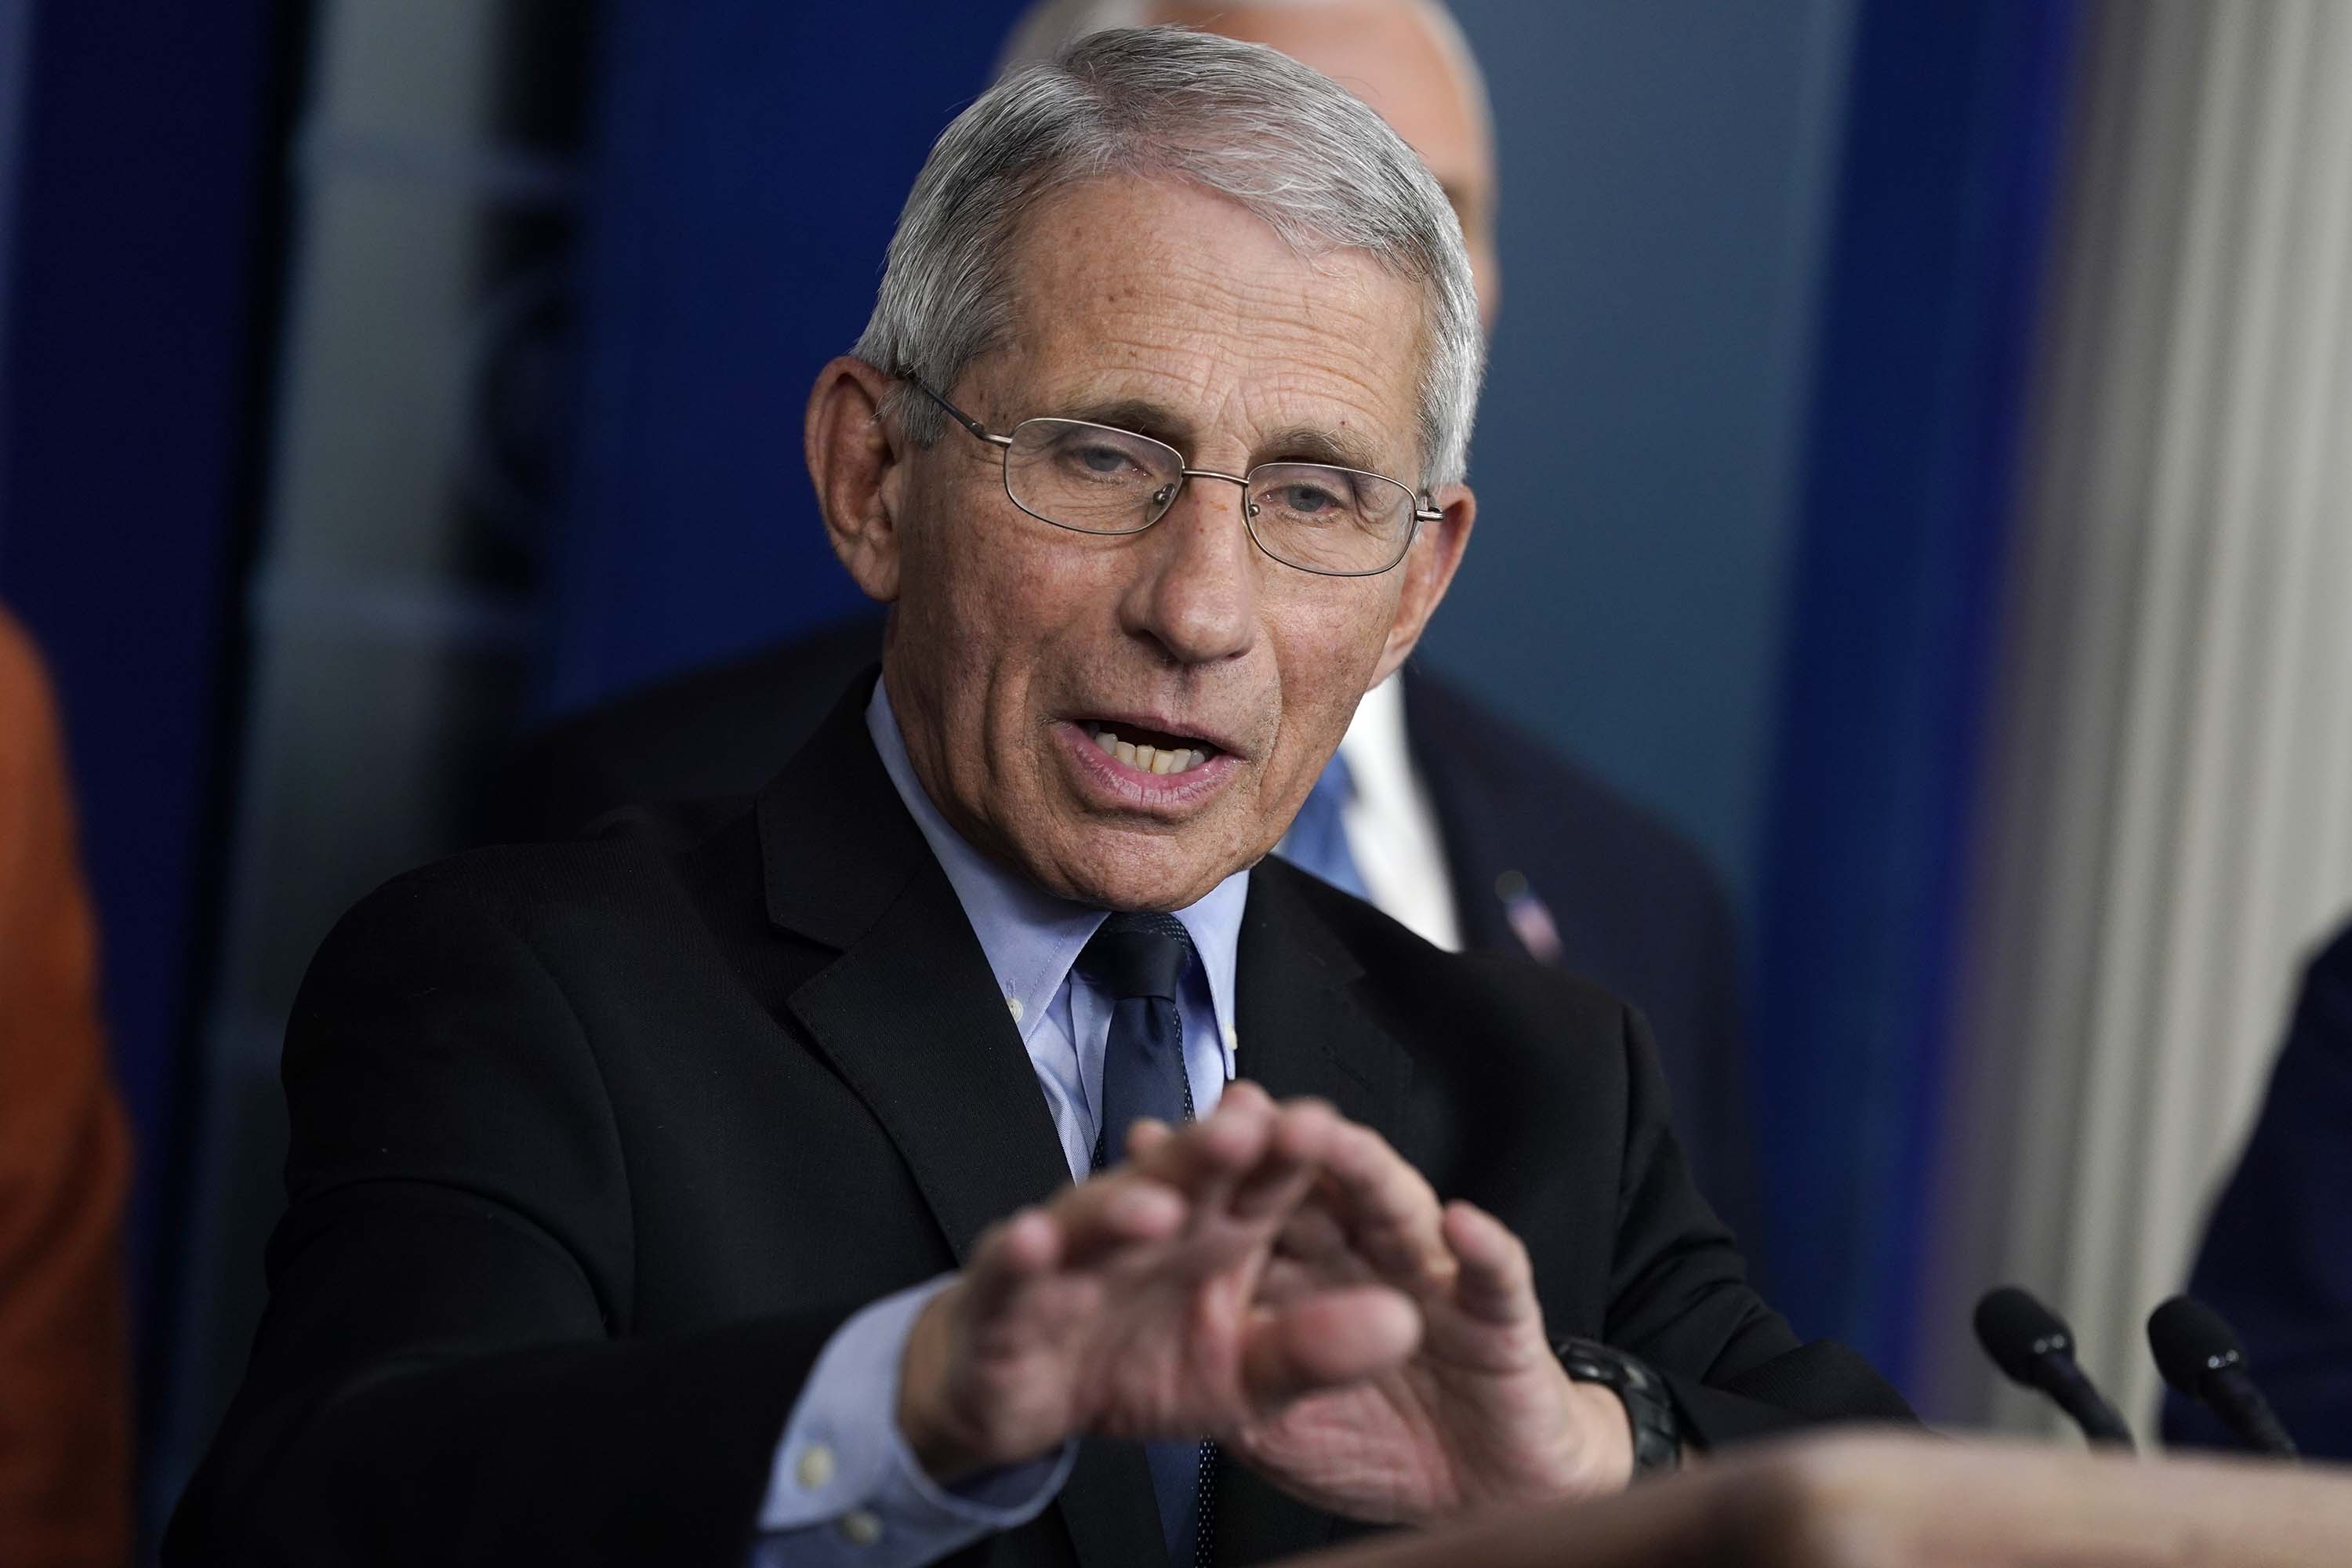 Dr. Anthony Fauci, Director of the National Institute of Allergy and Infectious Diseases, speaks during a press briefing with the coronavirus task force at the White House, on March 17.